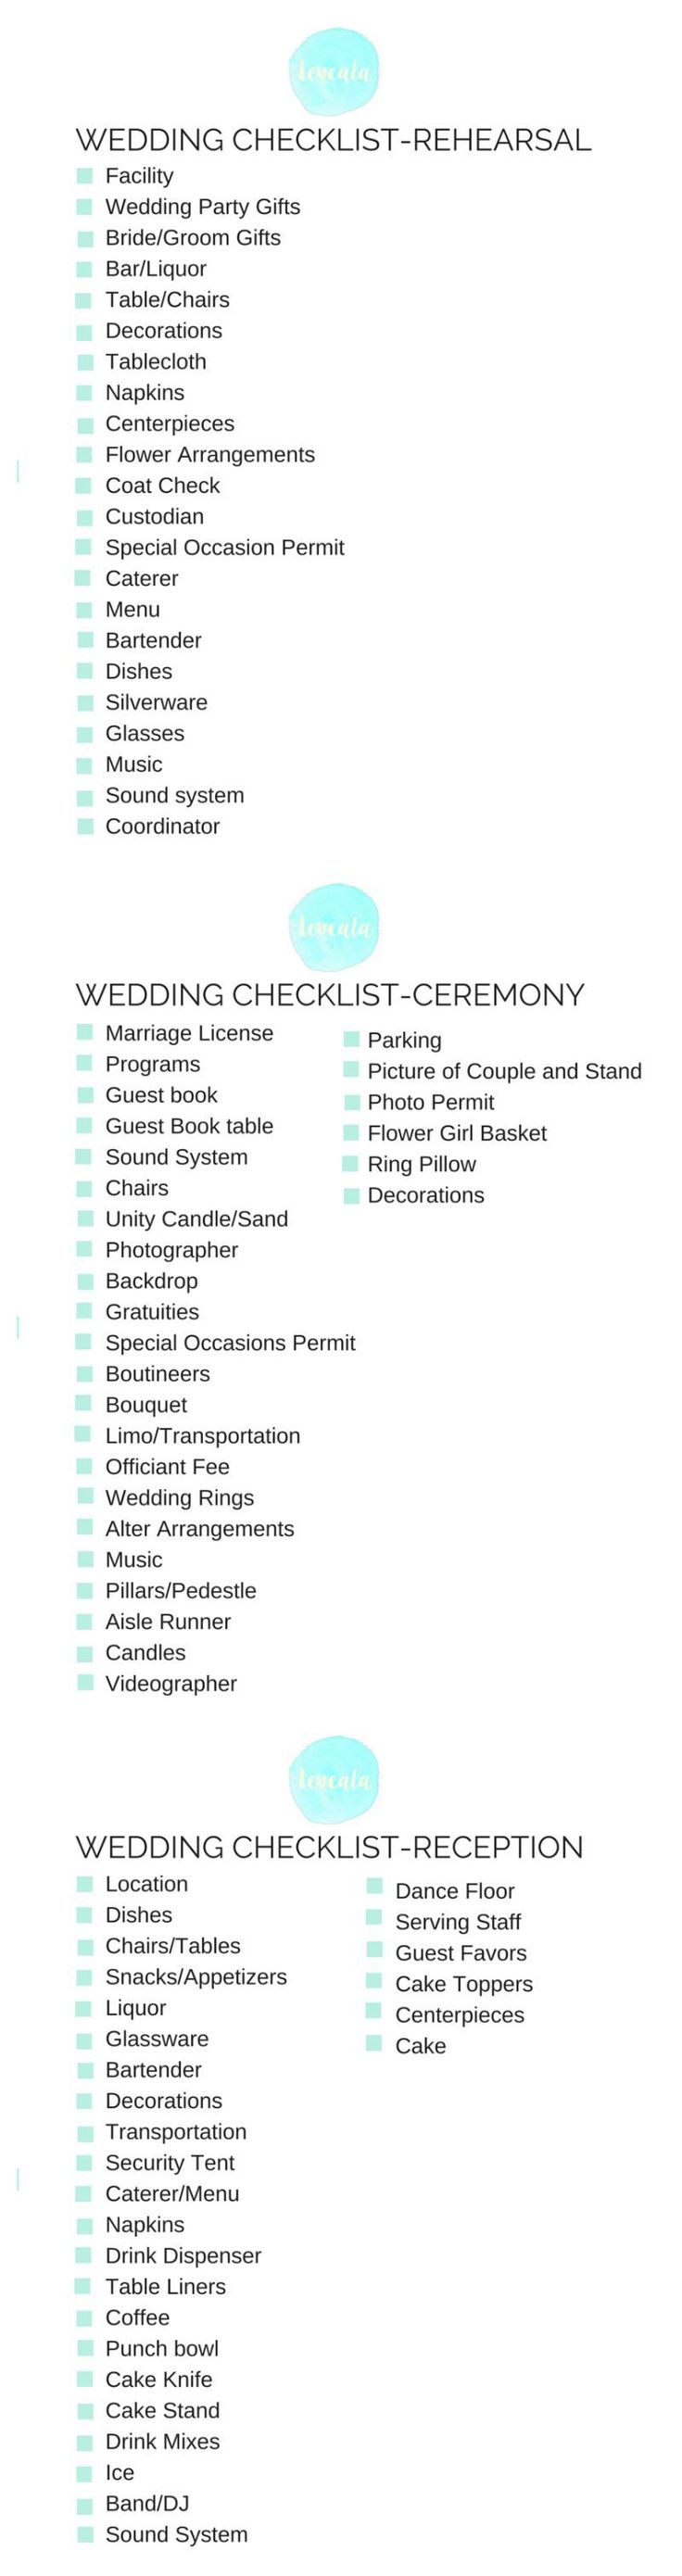 Best 25 Wedding coordinator checklist ideas on Pinterest